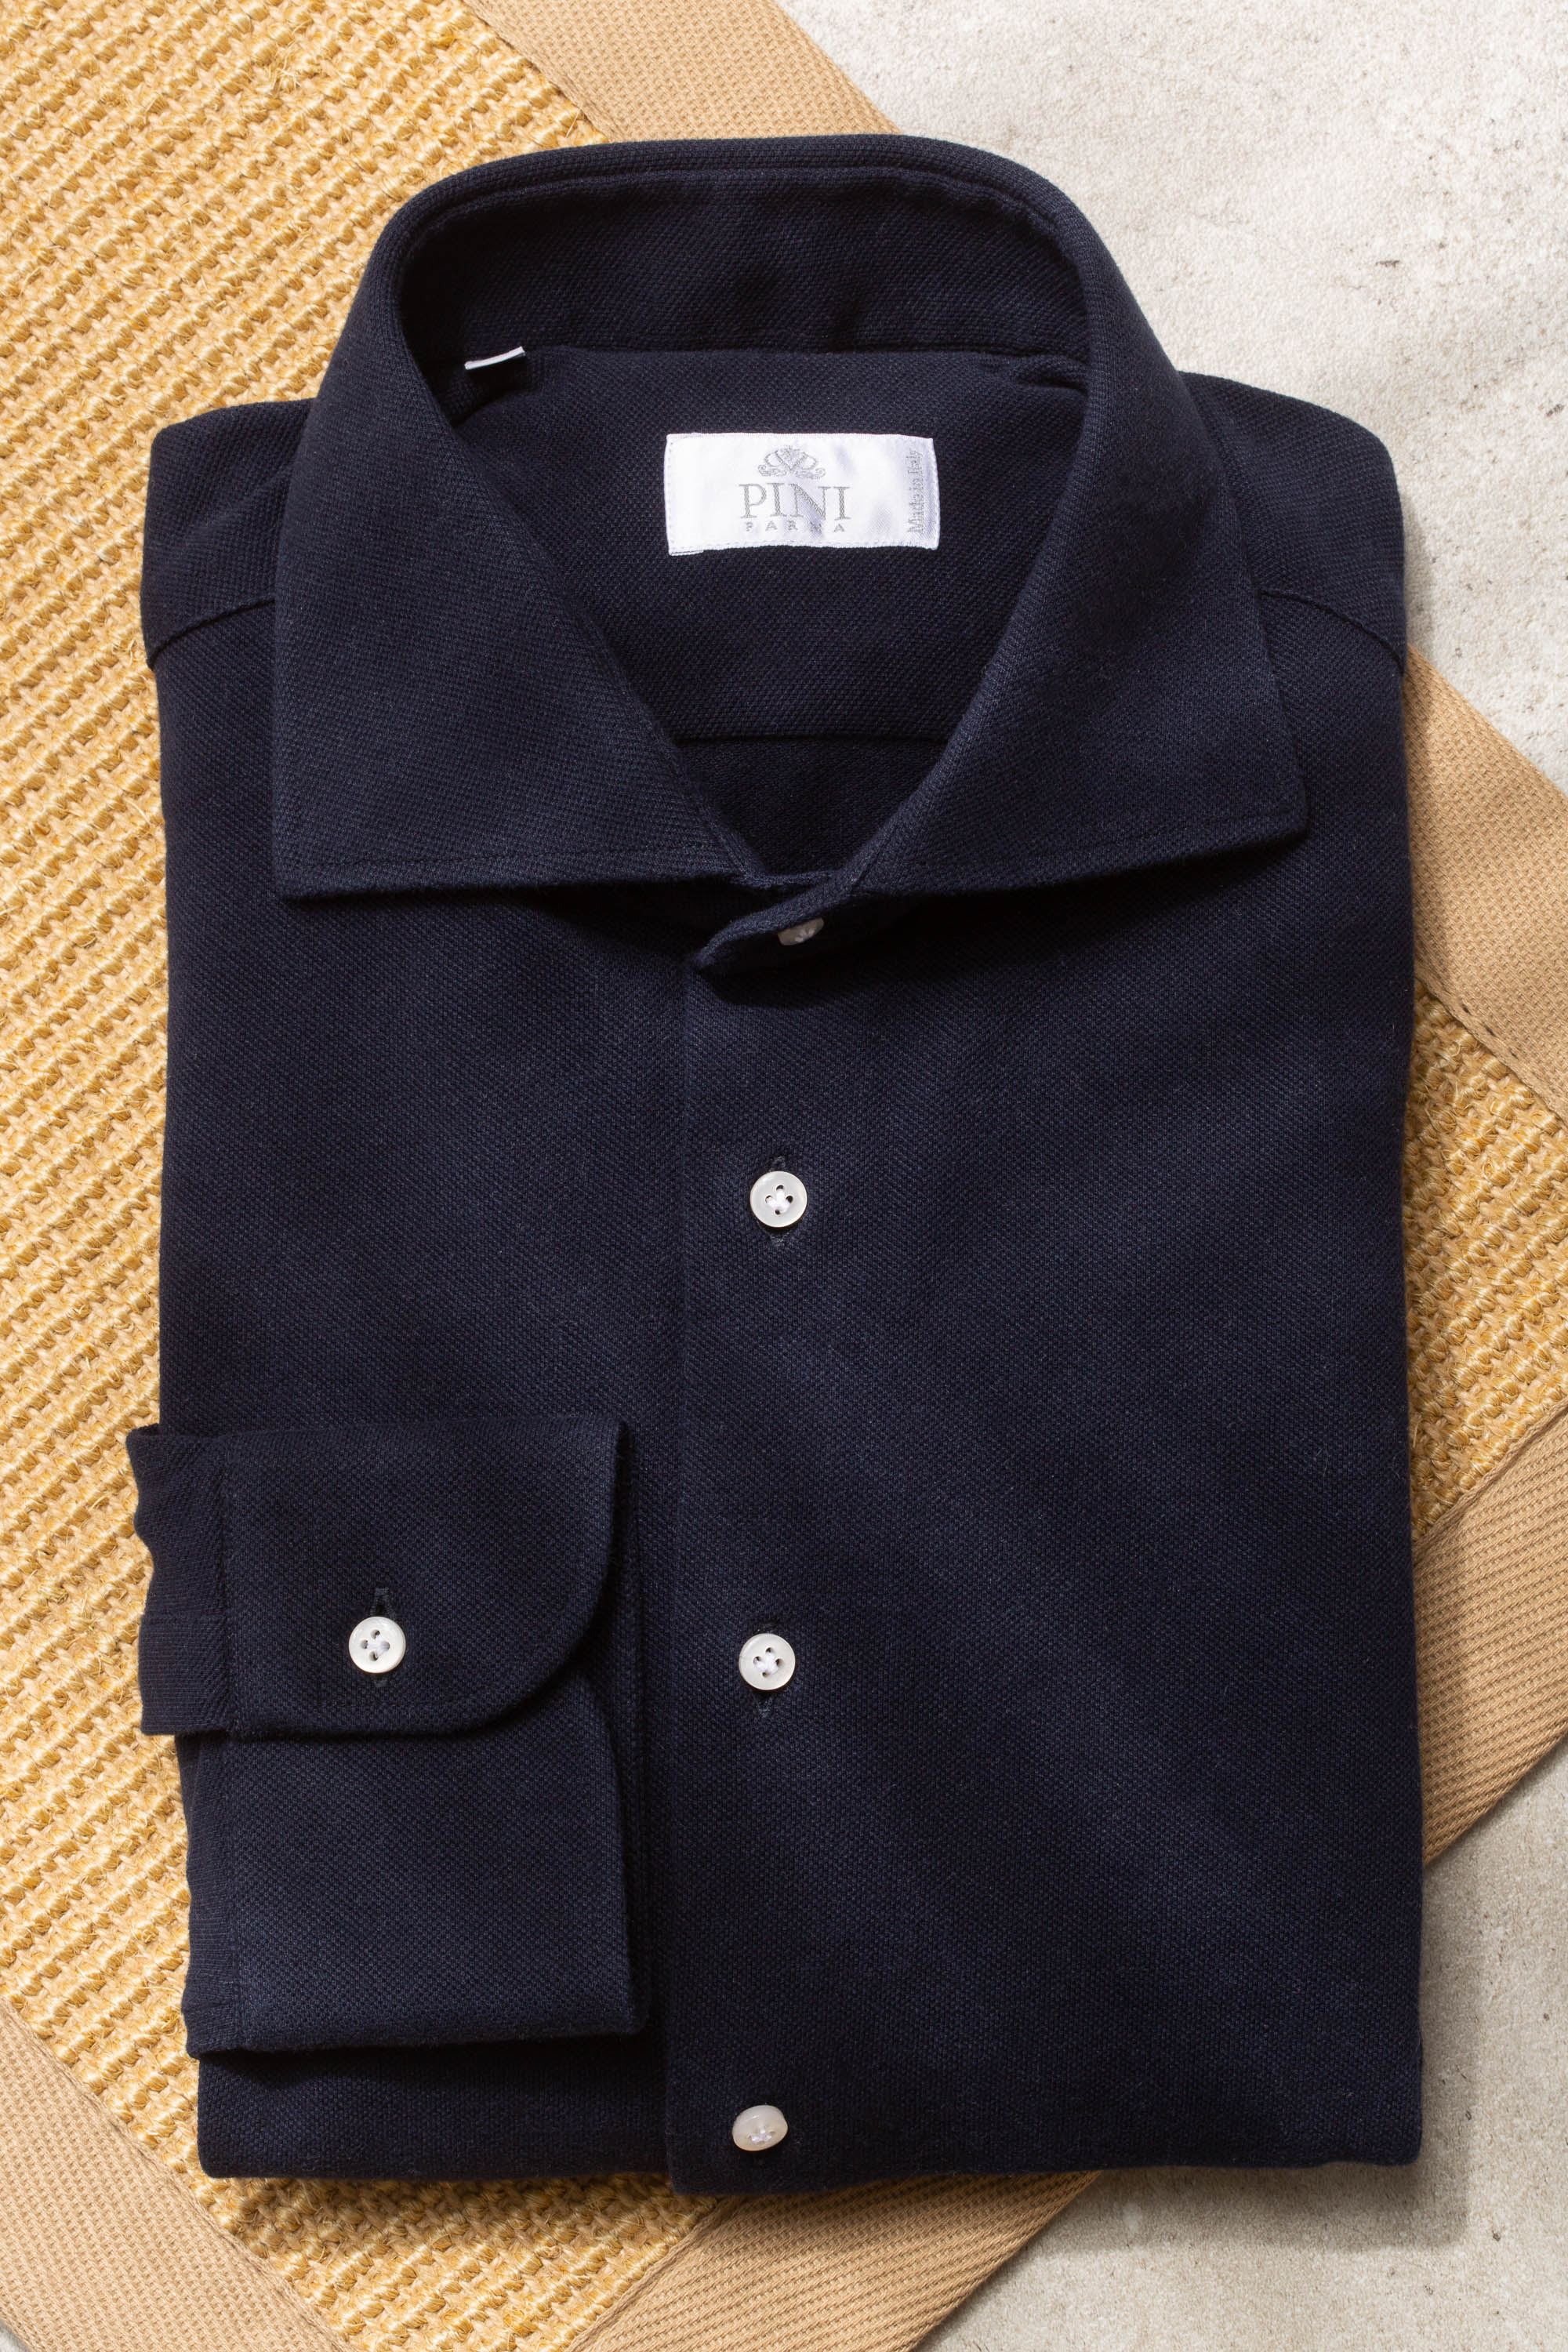 Navy polo shirt - Made in Italy